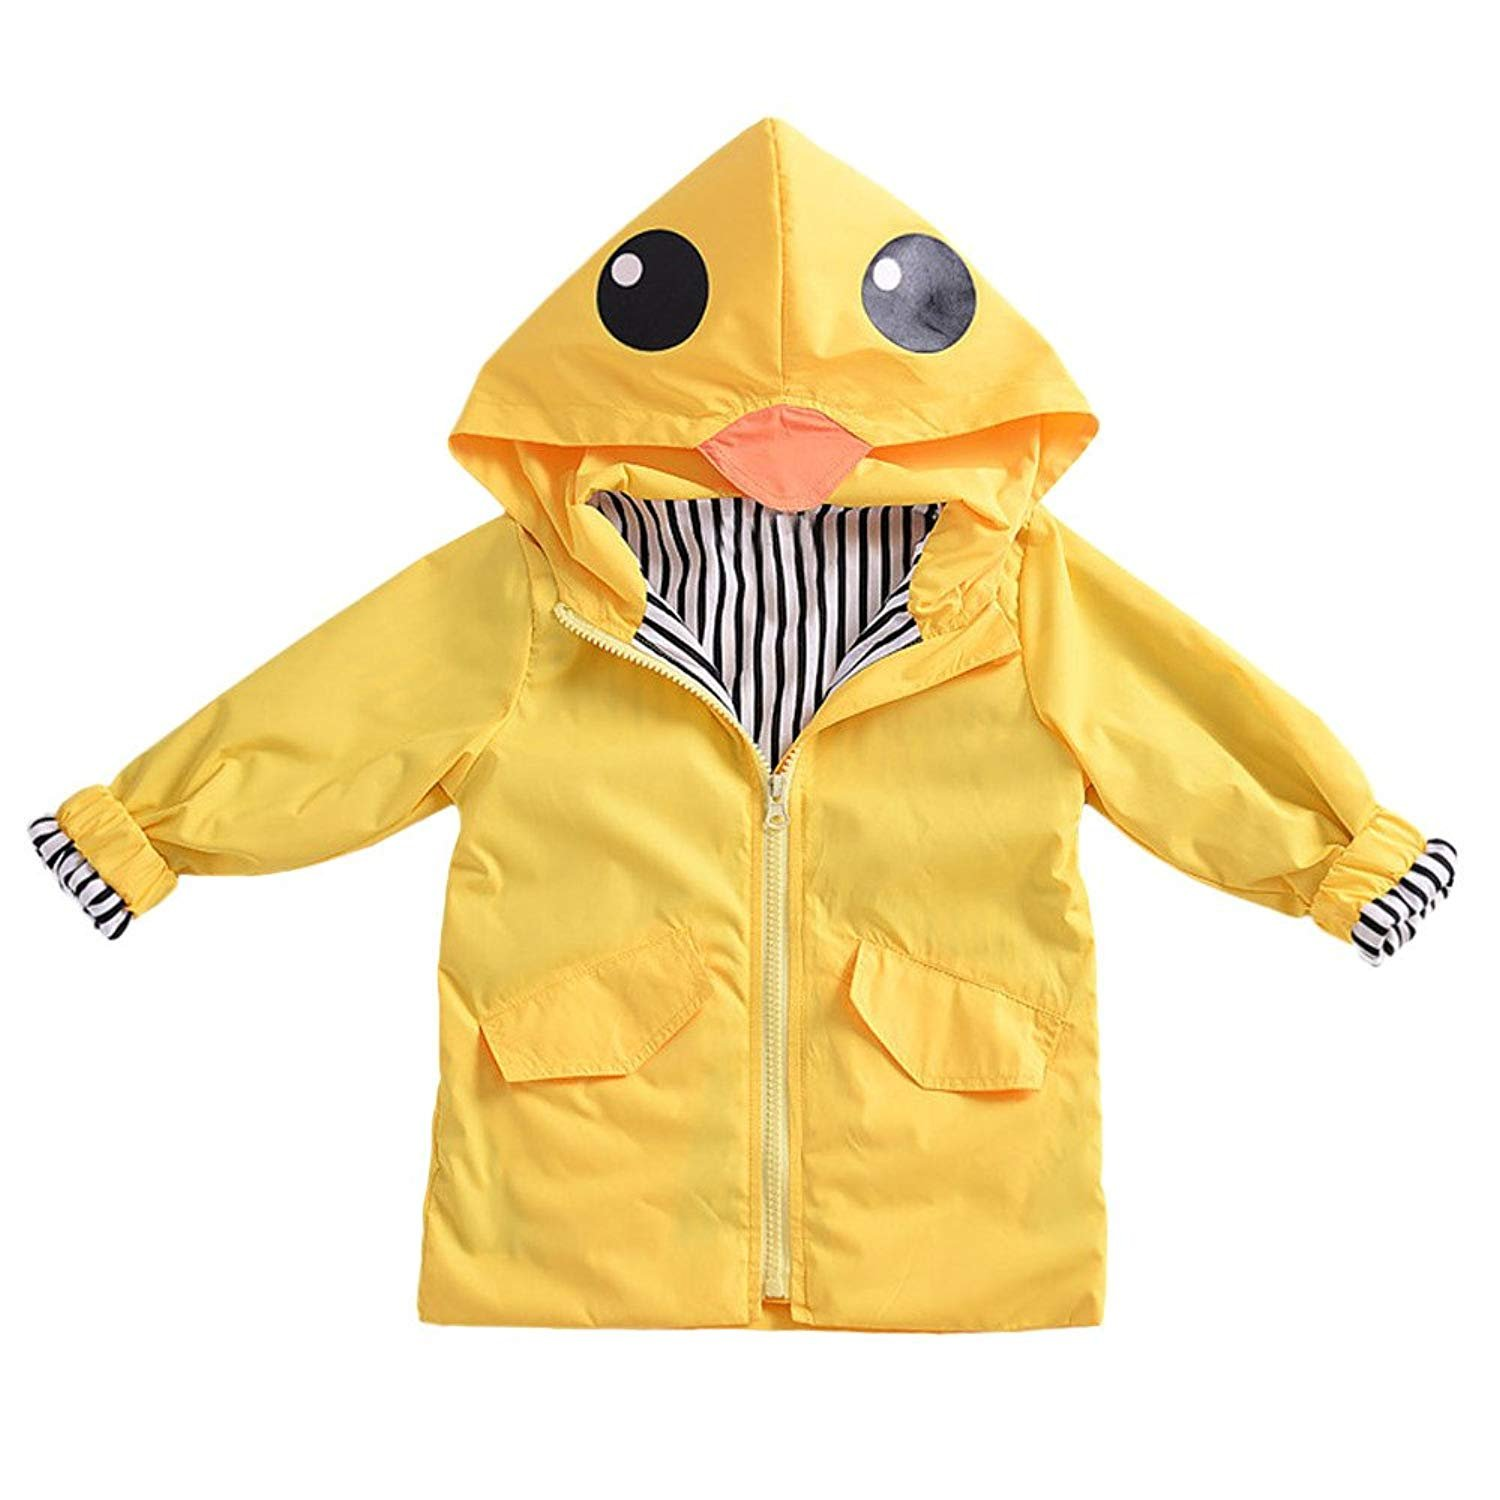 YOUNGER TREE Toddler Baby Boy Girl Duck Raincoat Cute Cartoon Hoodie Zipper Coat Outfit (Yellow, 80) by YOUNGER TREE (Image #5)